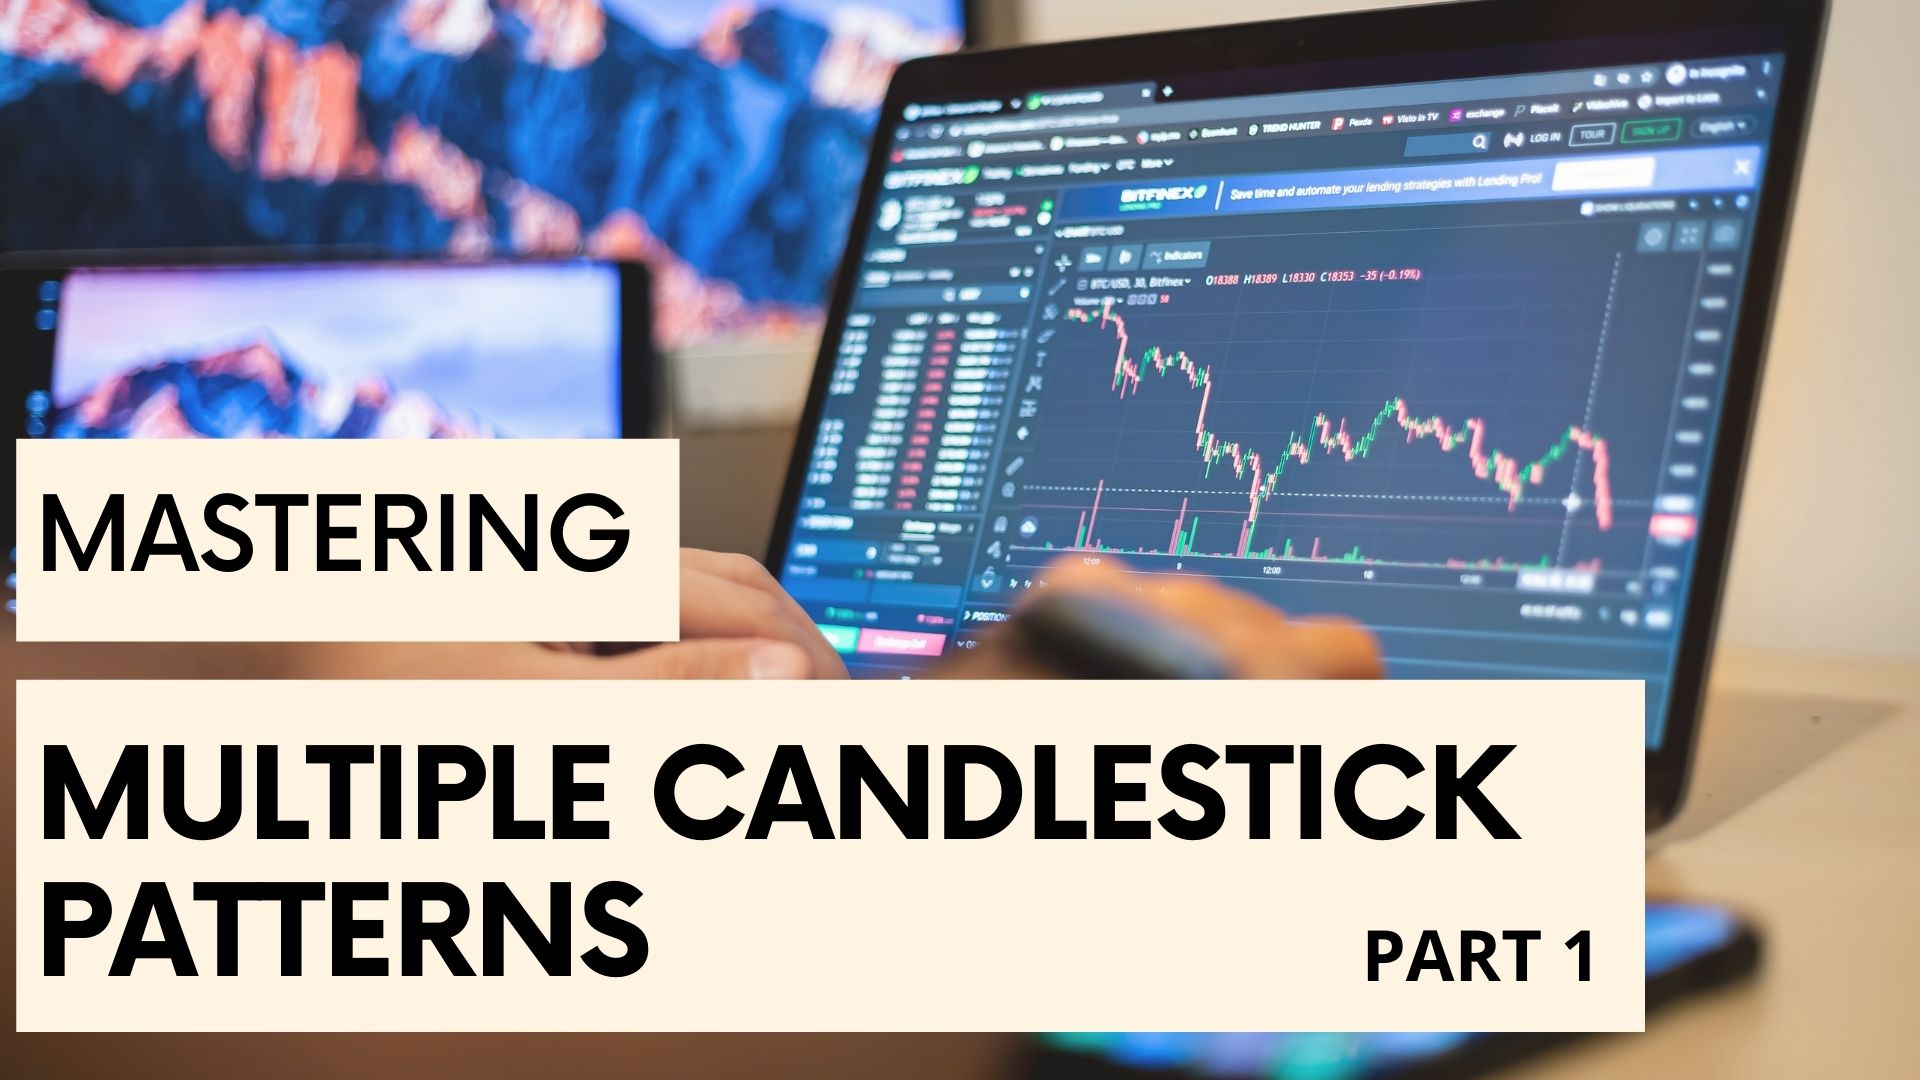 MULTIPLE CANDLE STICK PATTERNS